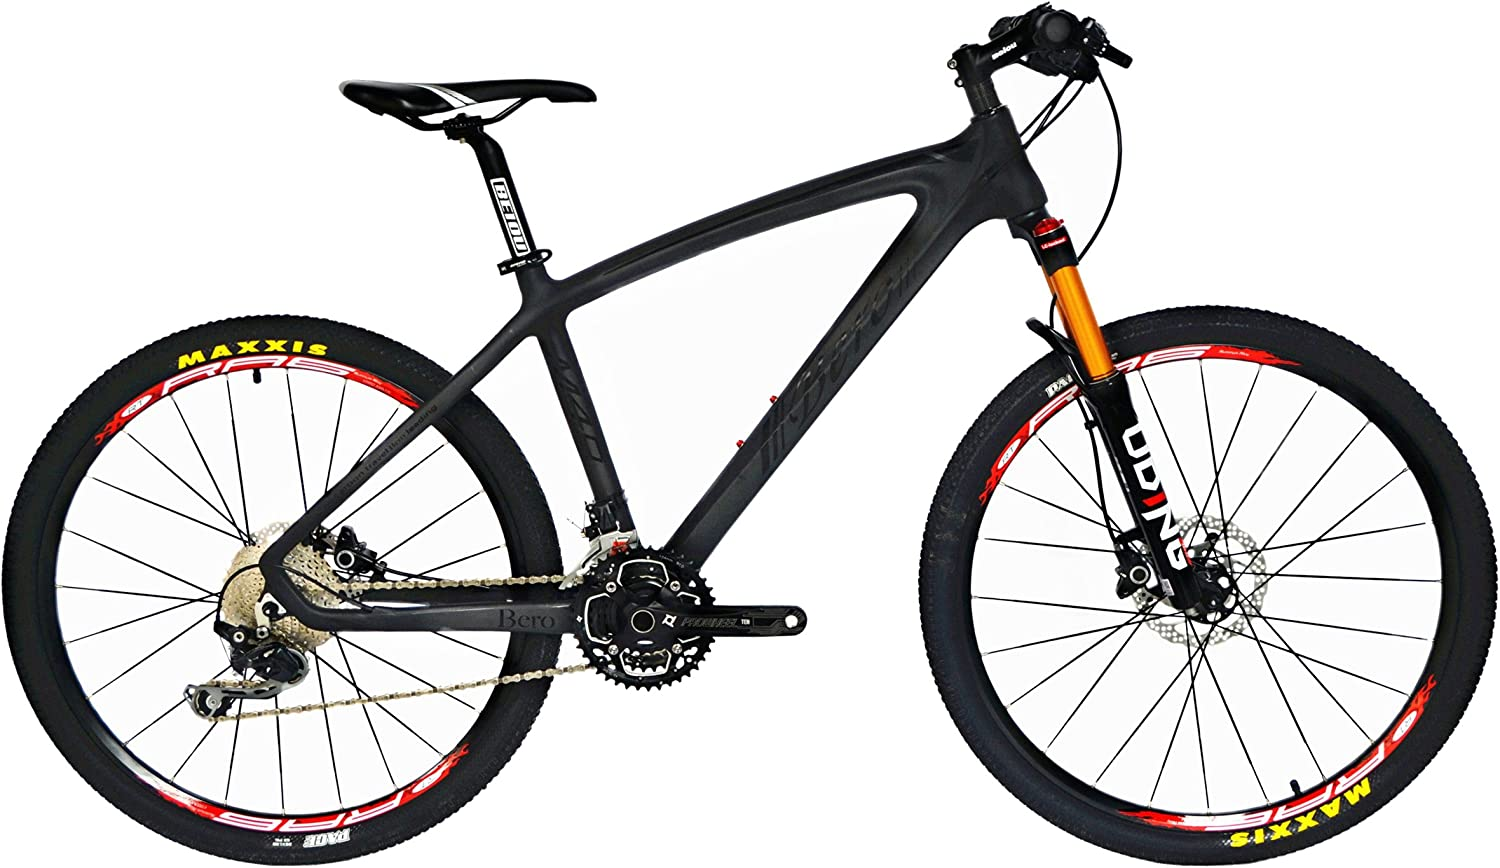 BEIOU Carbon Fiber Mountain Bike Hardtail